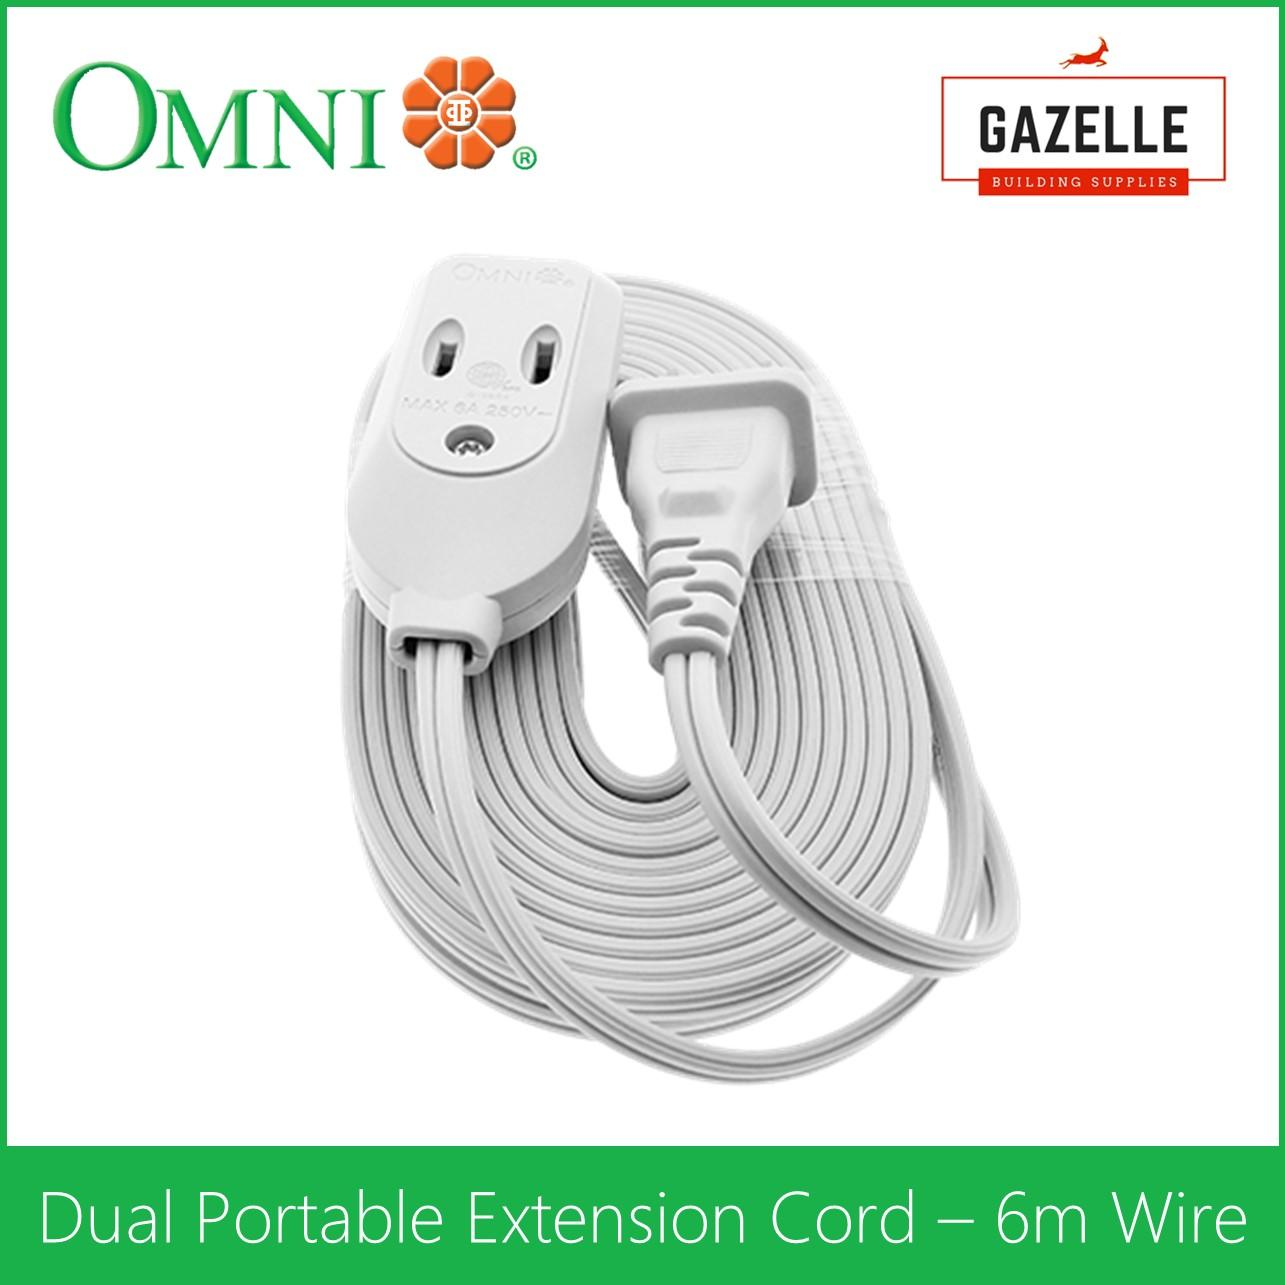 Extension Cord For Sale Electrical Cables Prices Brands Review Wiring Outdoor Sockets Uk Omni Dual Portable 6 Meter Wire Wdp 306